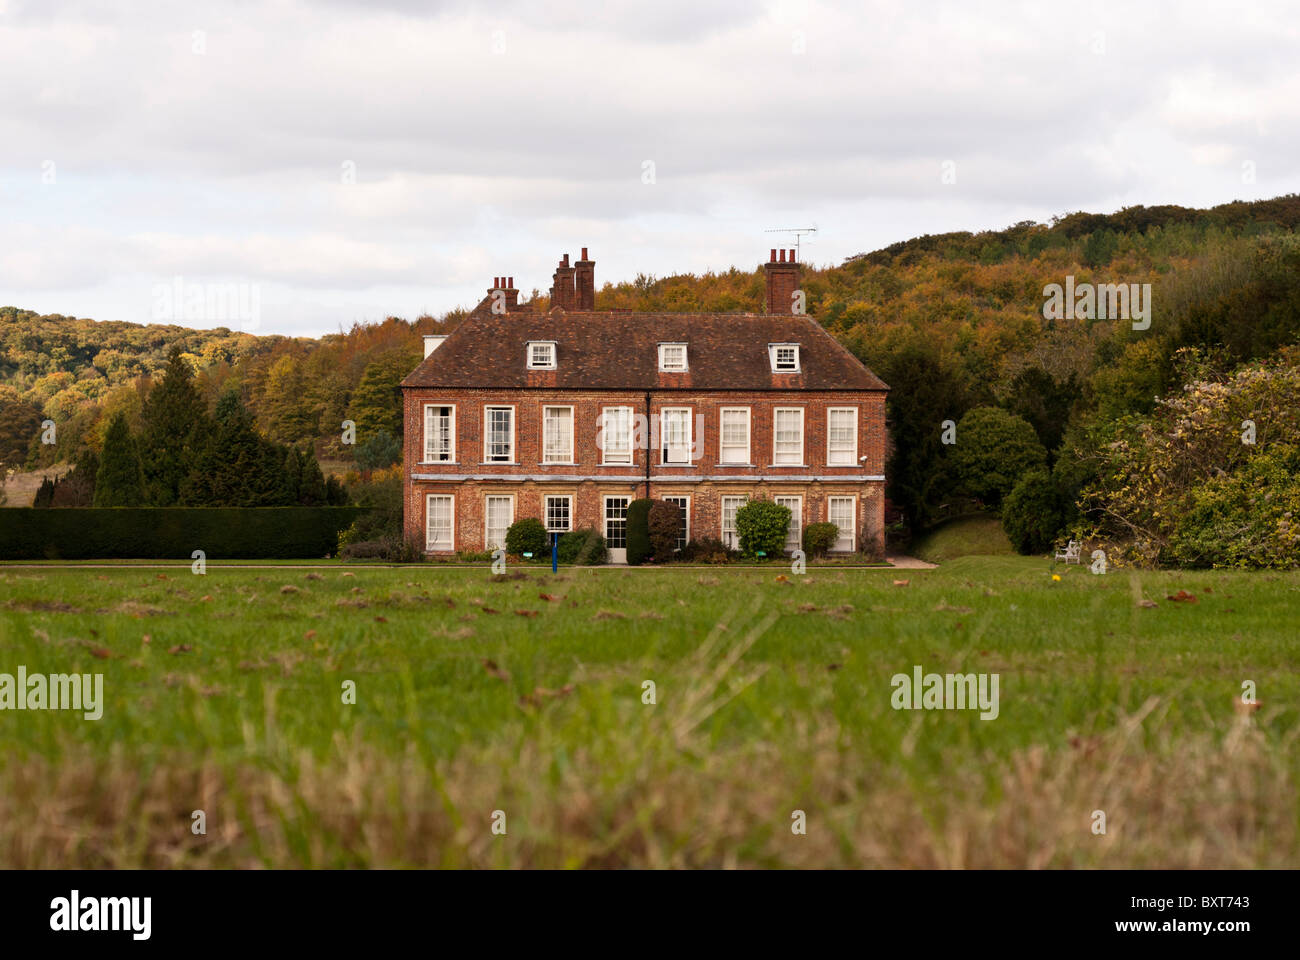 Bradenham Manor A Popular Wedding And Conference Venue Set In The Chiltern Hills Near High Wycombe England